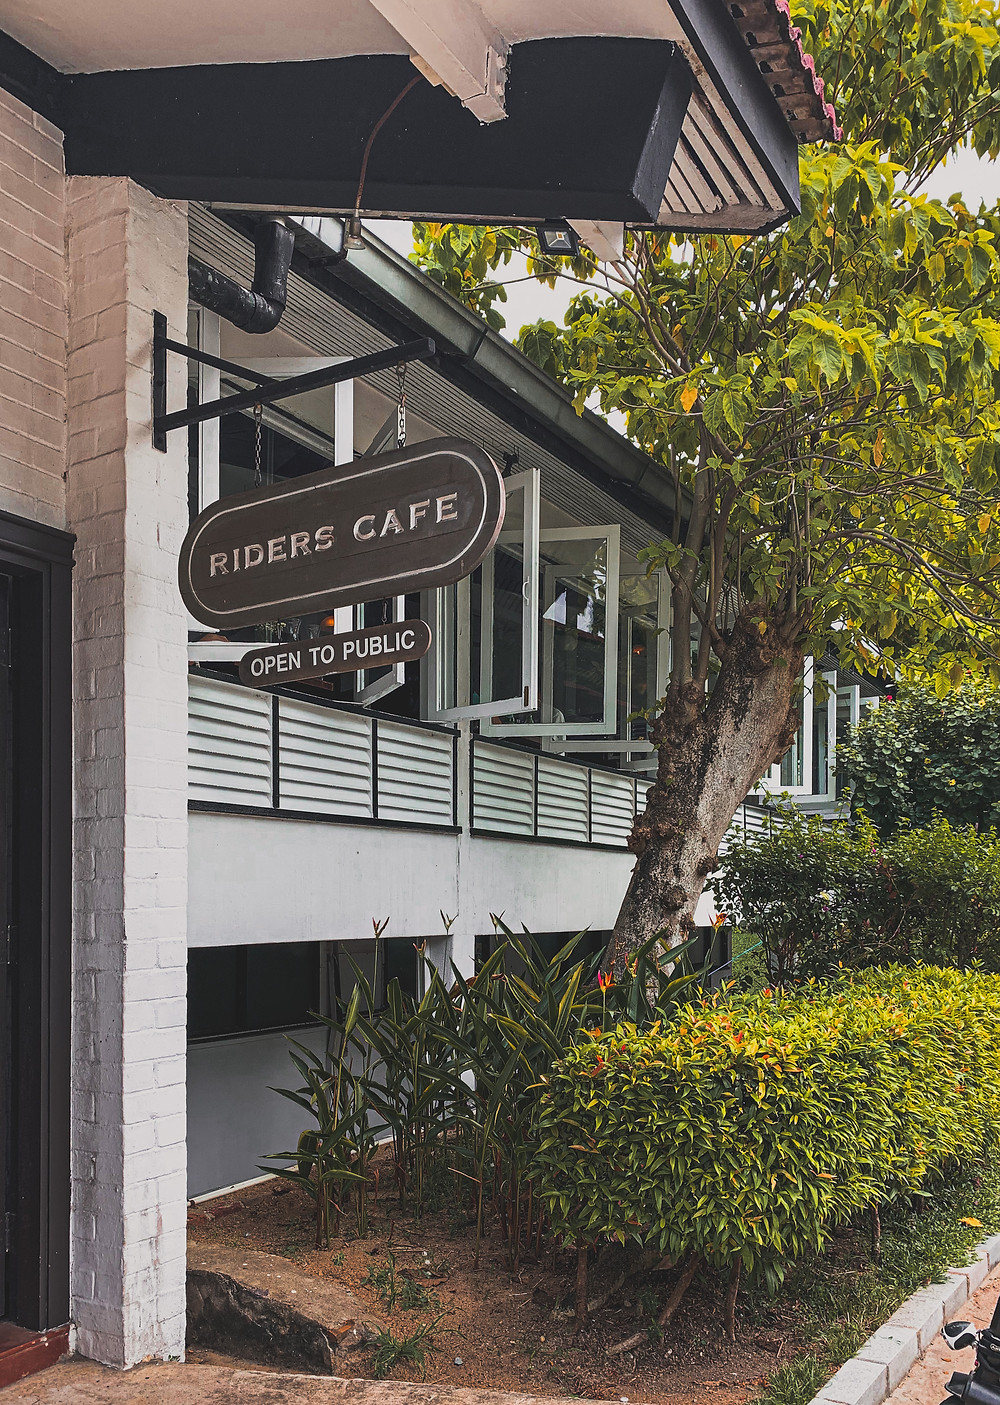 Rollingbear Travels blog/ Entrance to Riders Cafe, a heritage black-and-white-building in Bukit Timah, Singapore